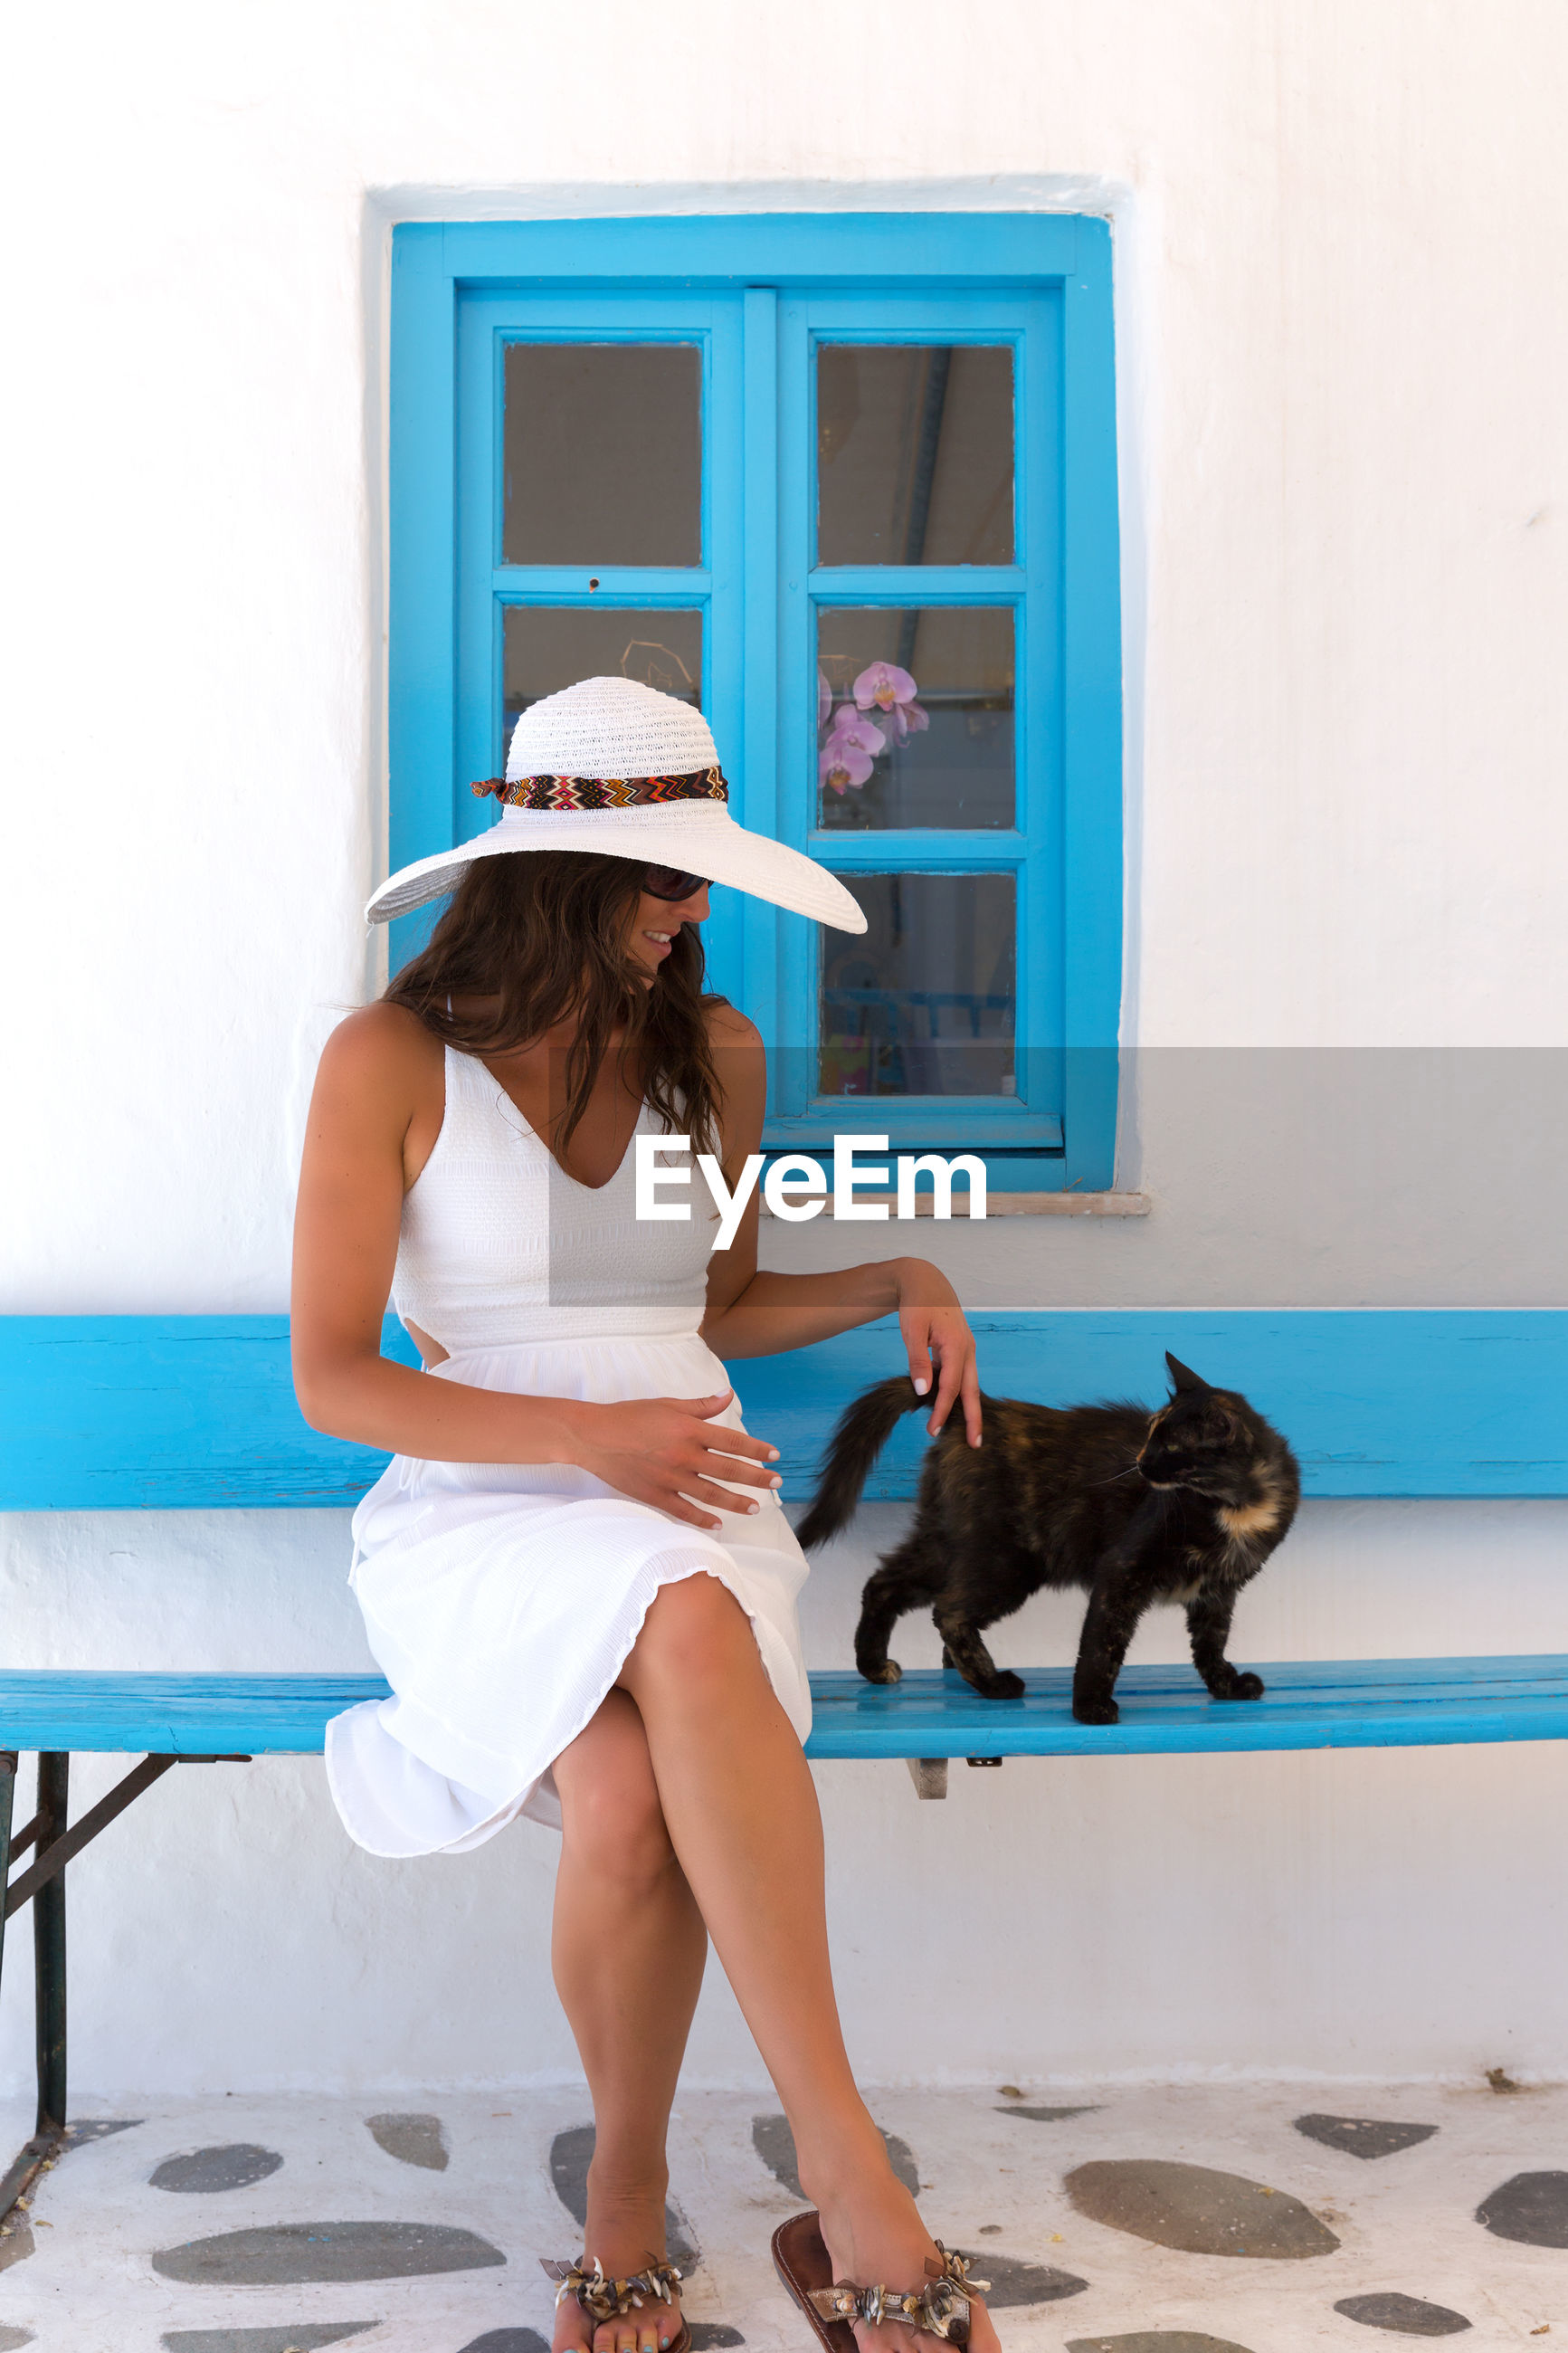 Woman wearing white dress playing with cat while sitting on bench against wall